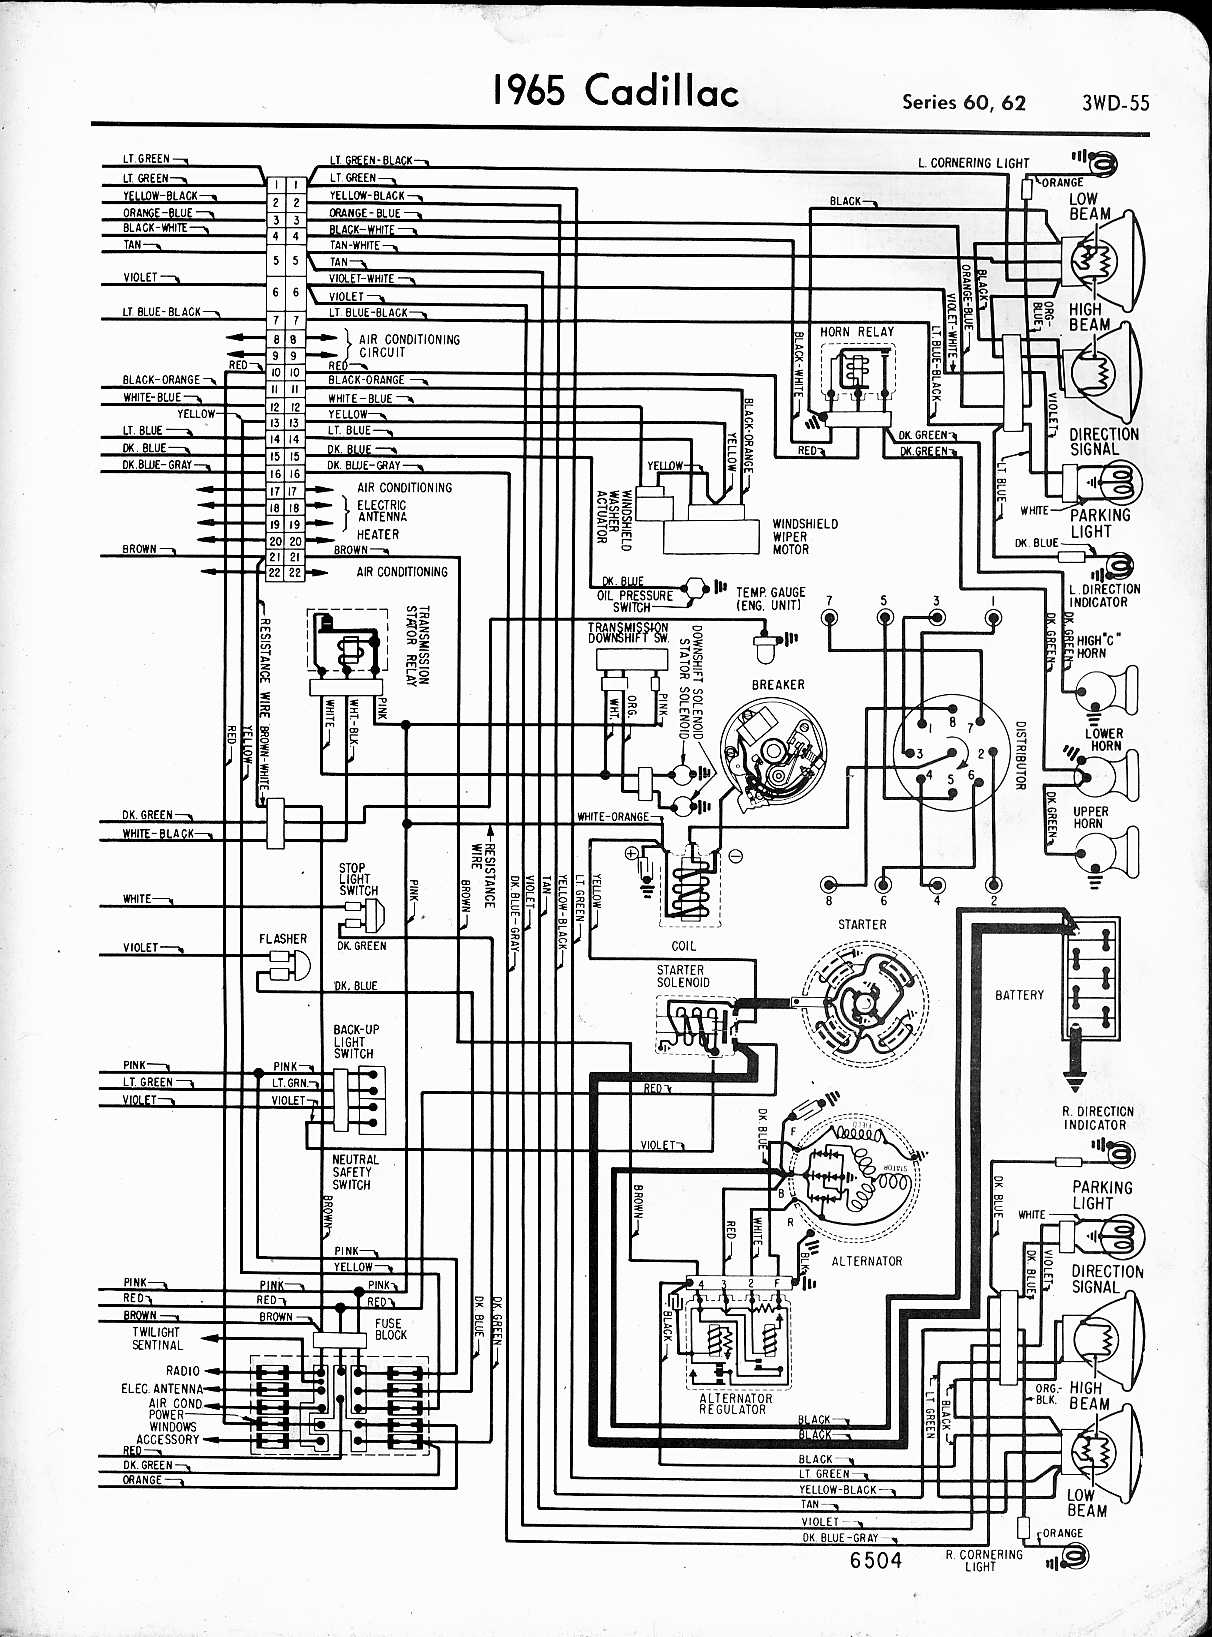 Cadillac Wiring Problems Just Another Diagram Blog For Srx Diagrams 1957 1965 Rh Oldcarmanualproject Com Cts